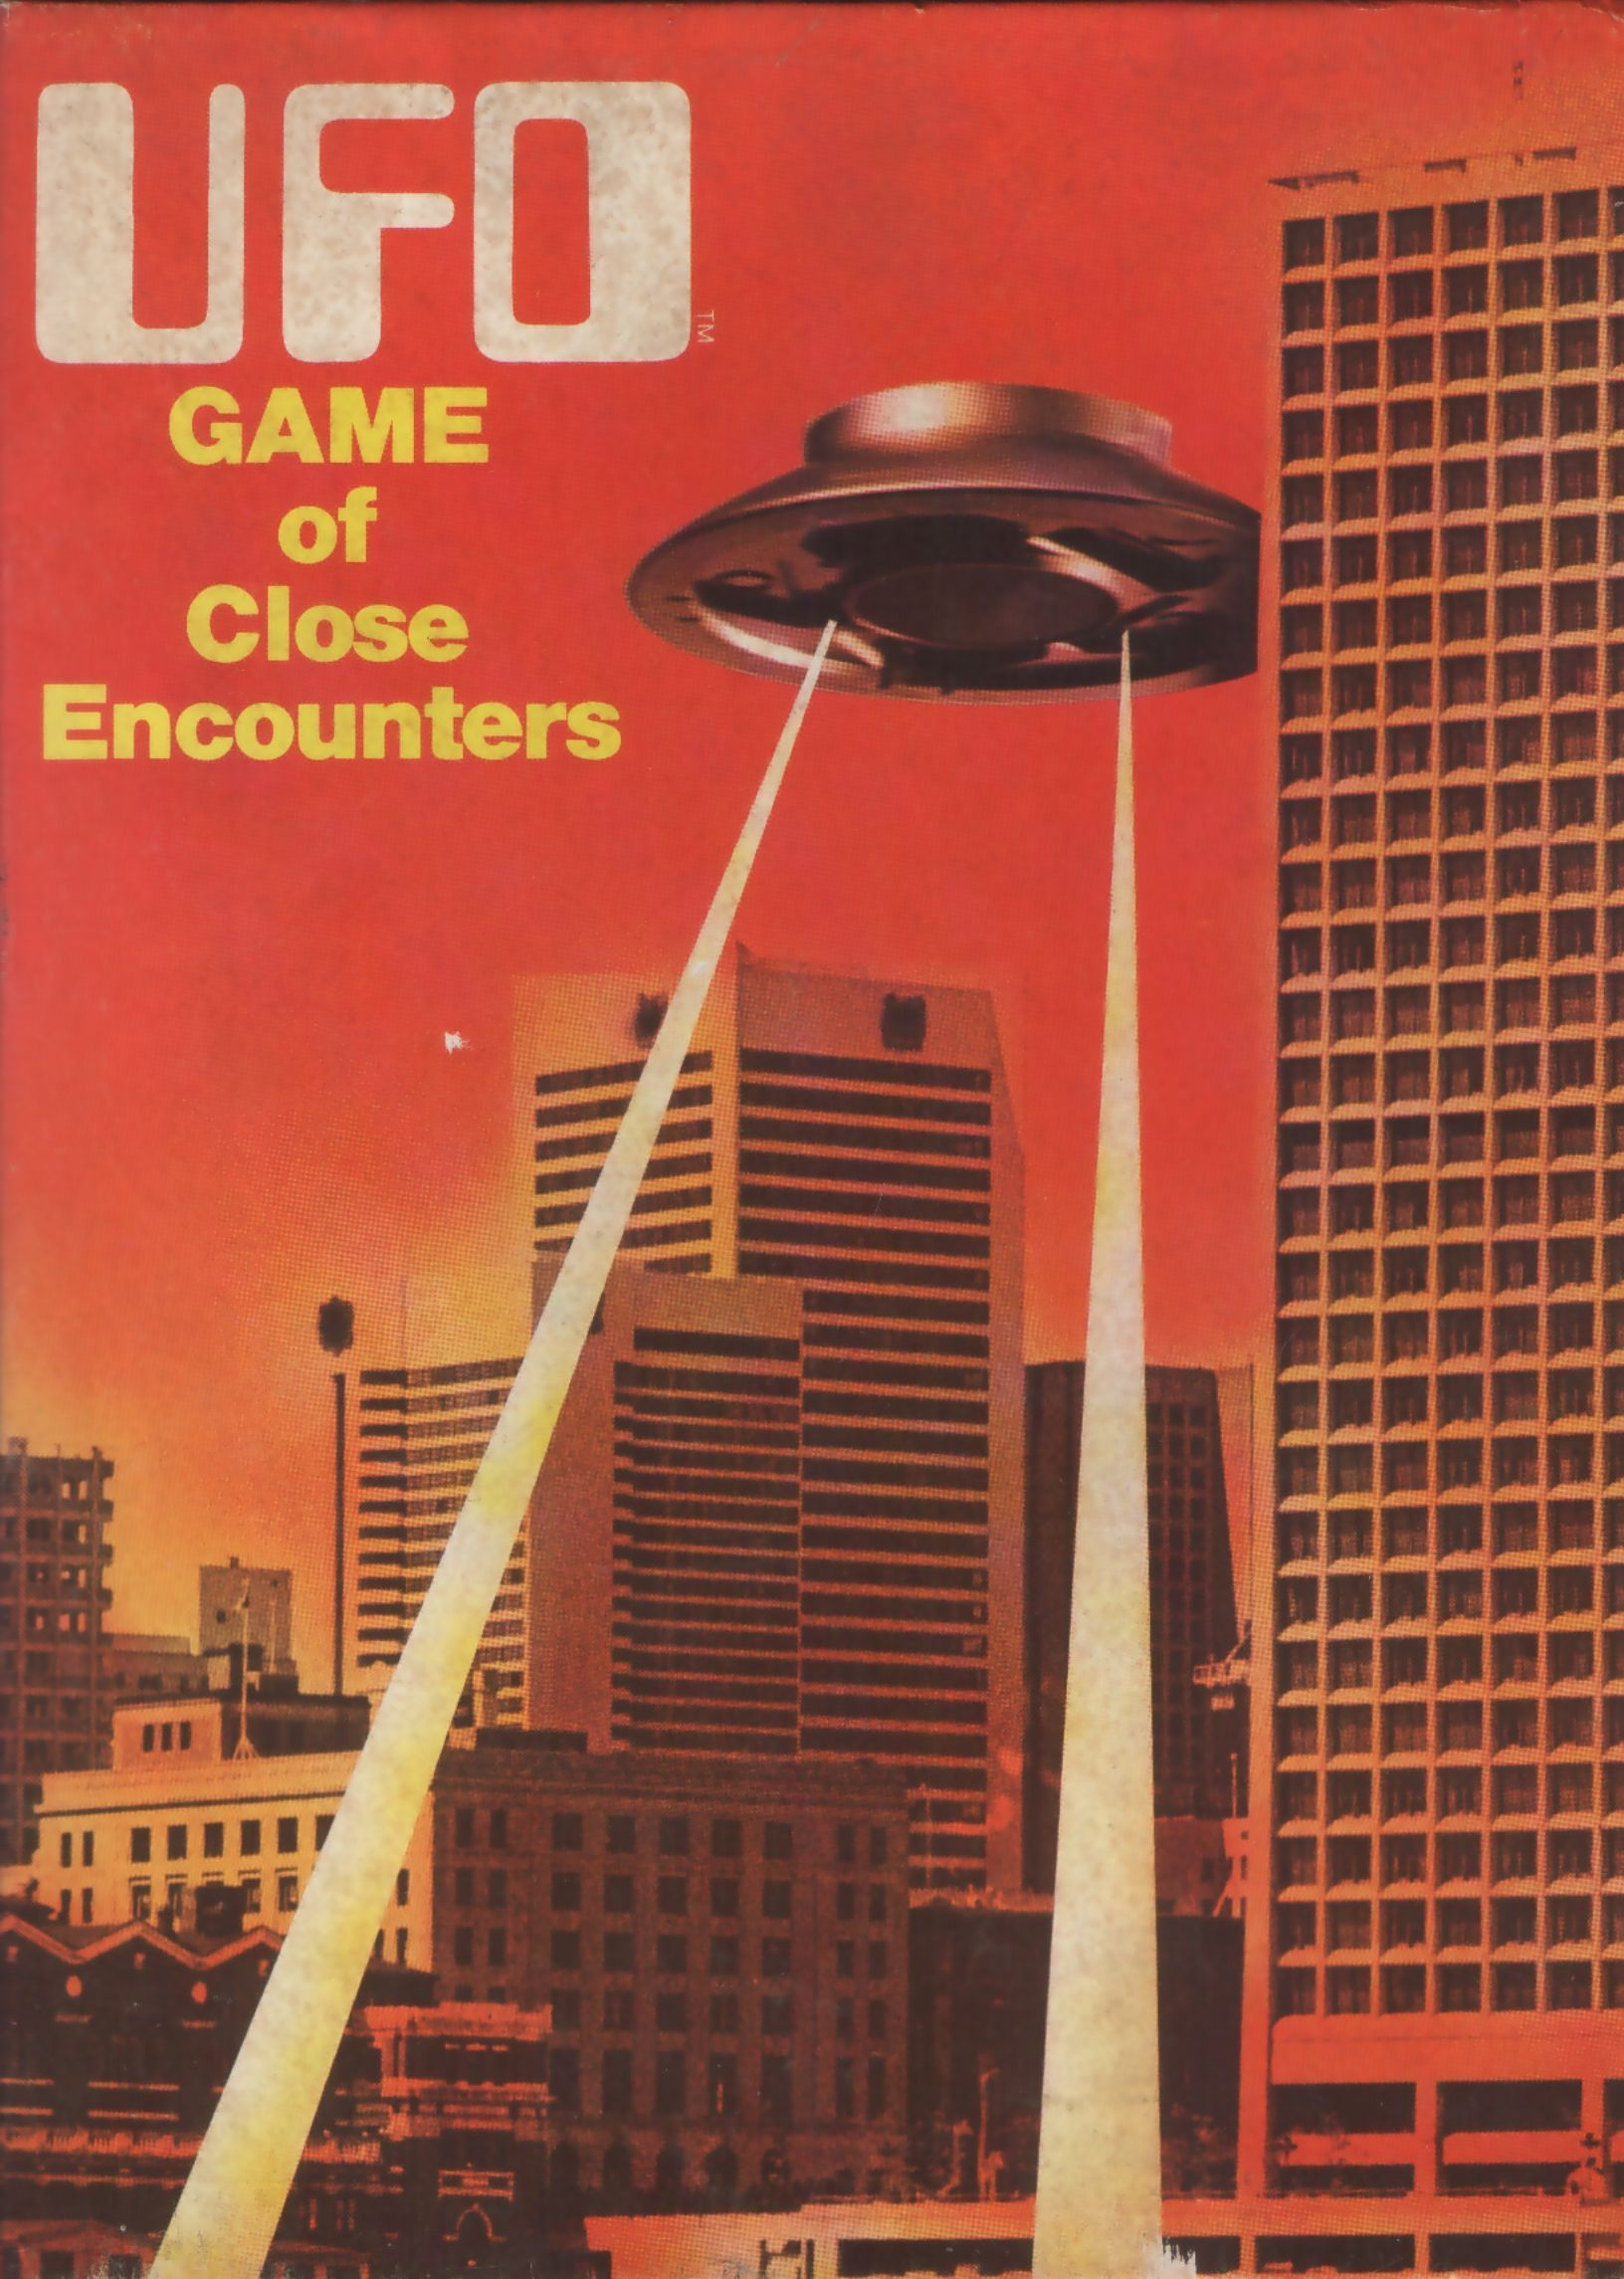 UFO: Game of Close Encounters